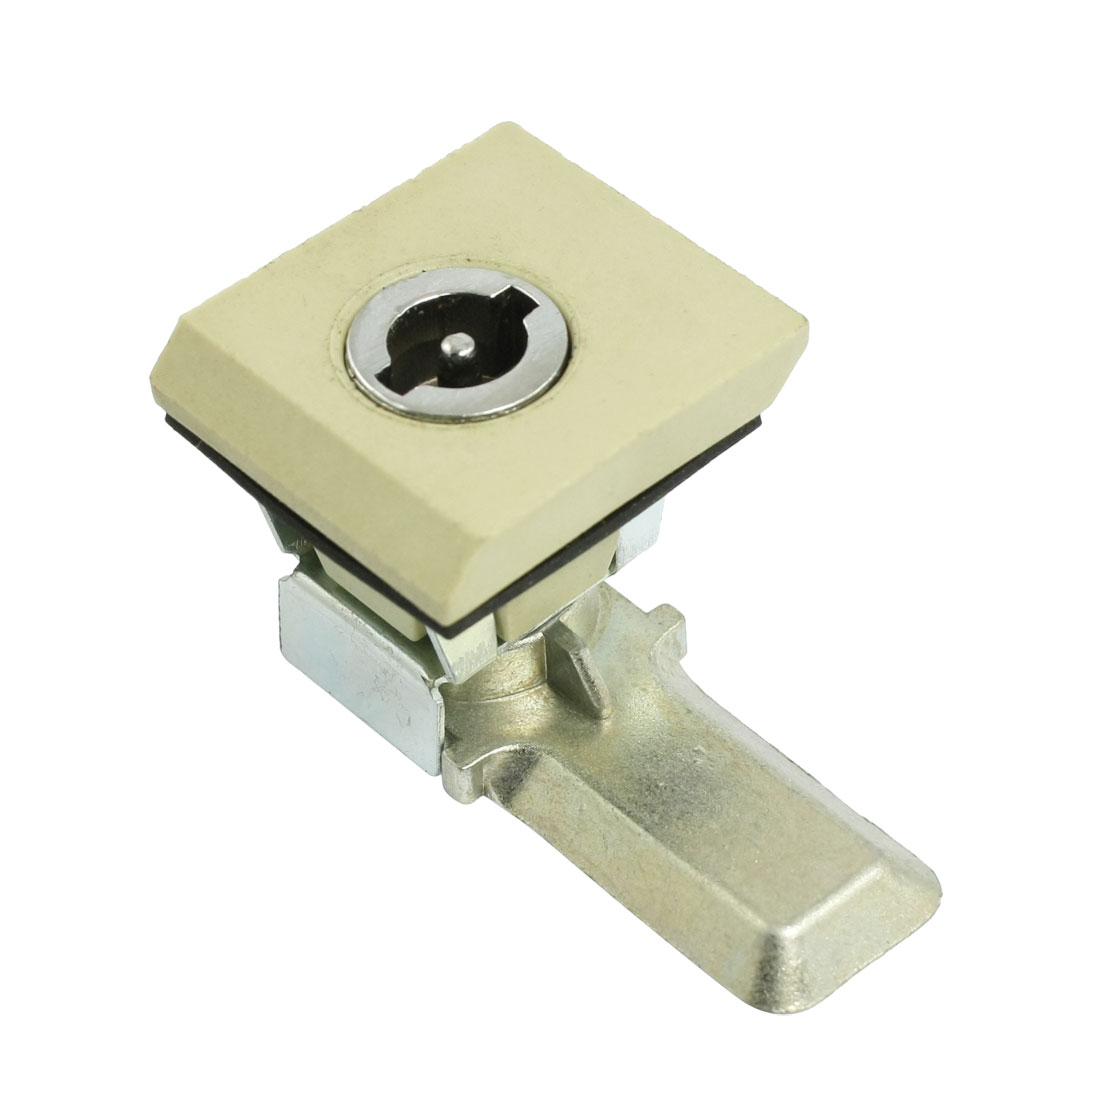 Cabinet Square Panel Quarter Turn Latch Safety Cam Lock